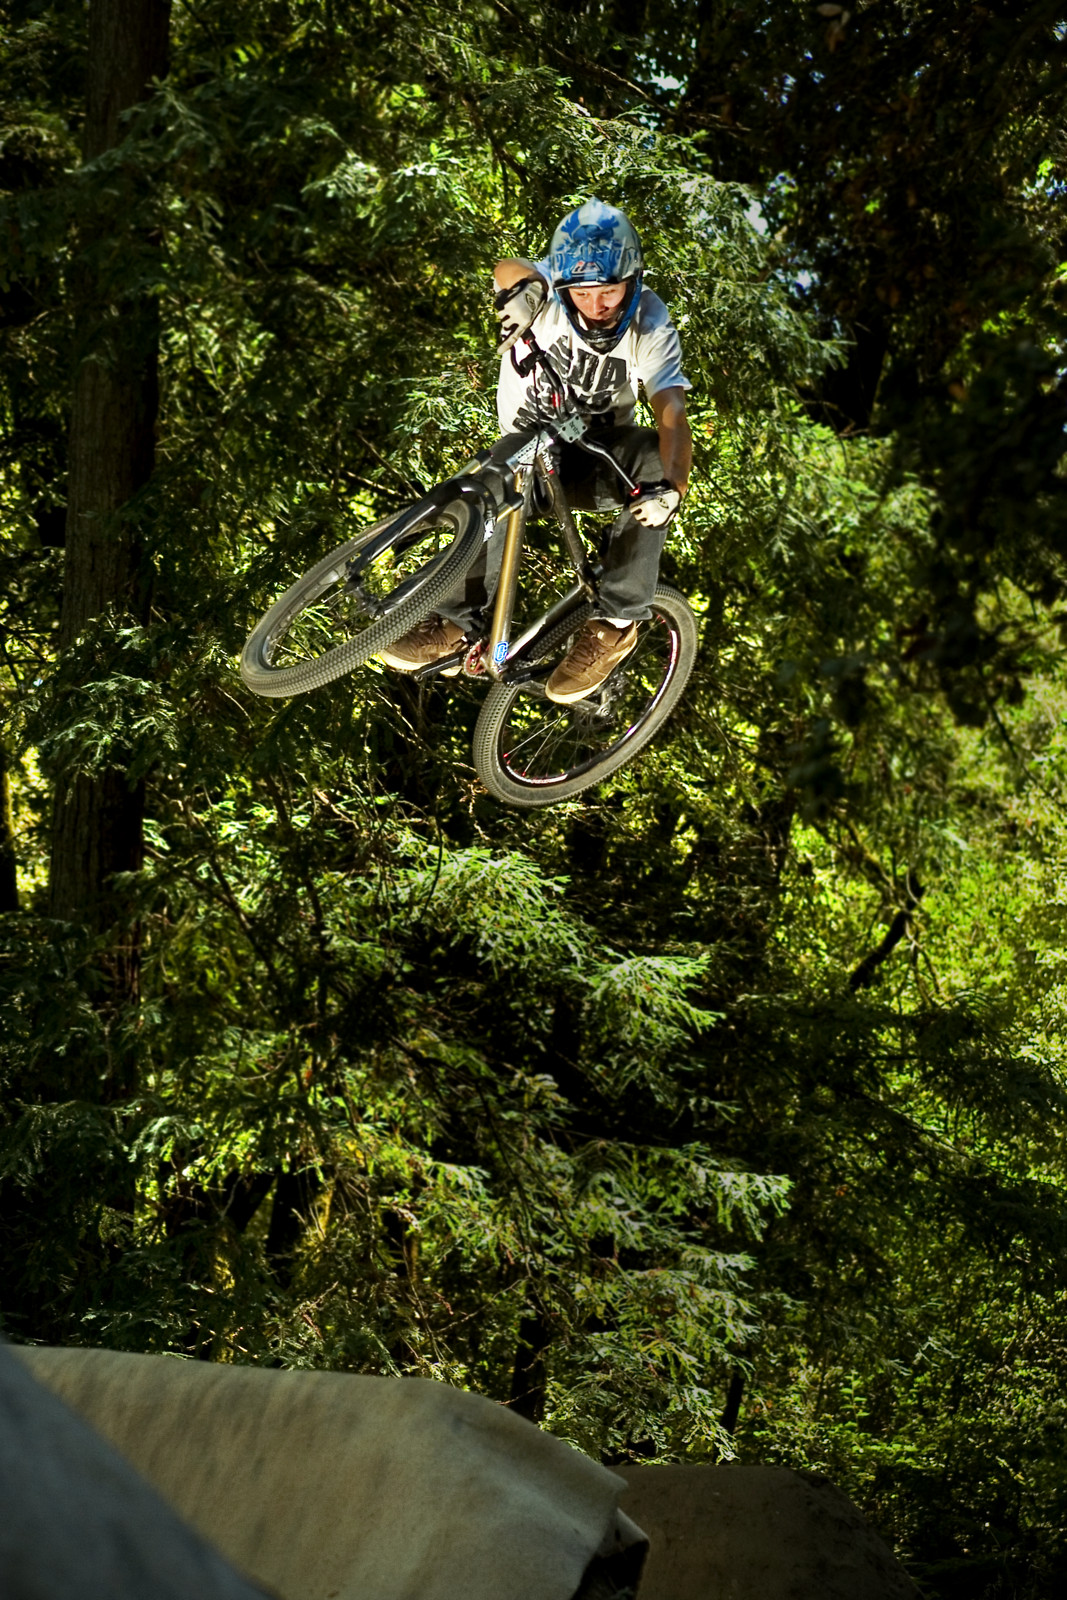 Euro in Aptos - naturalhigh - Mountain Biking Pictures - Vital MTB